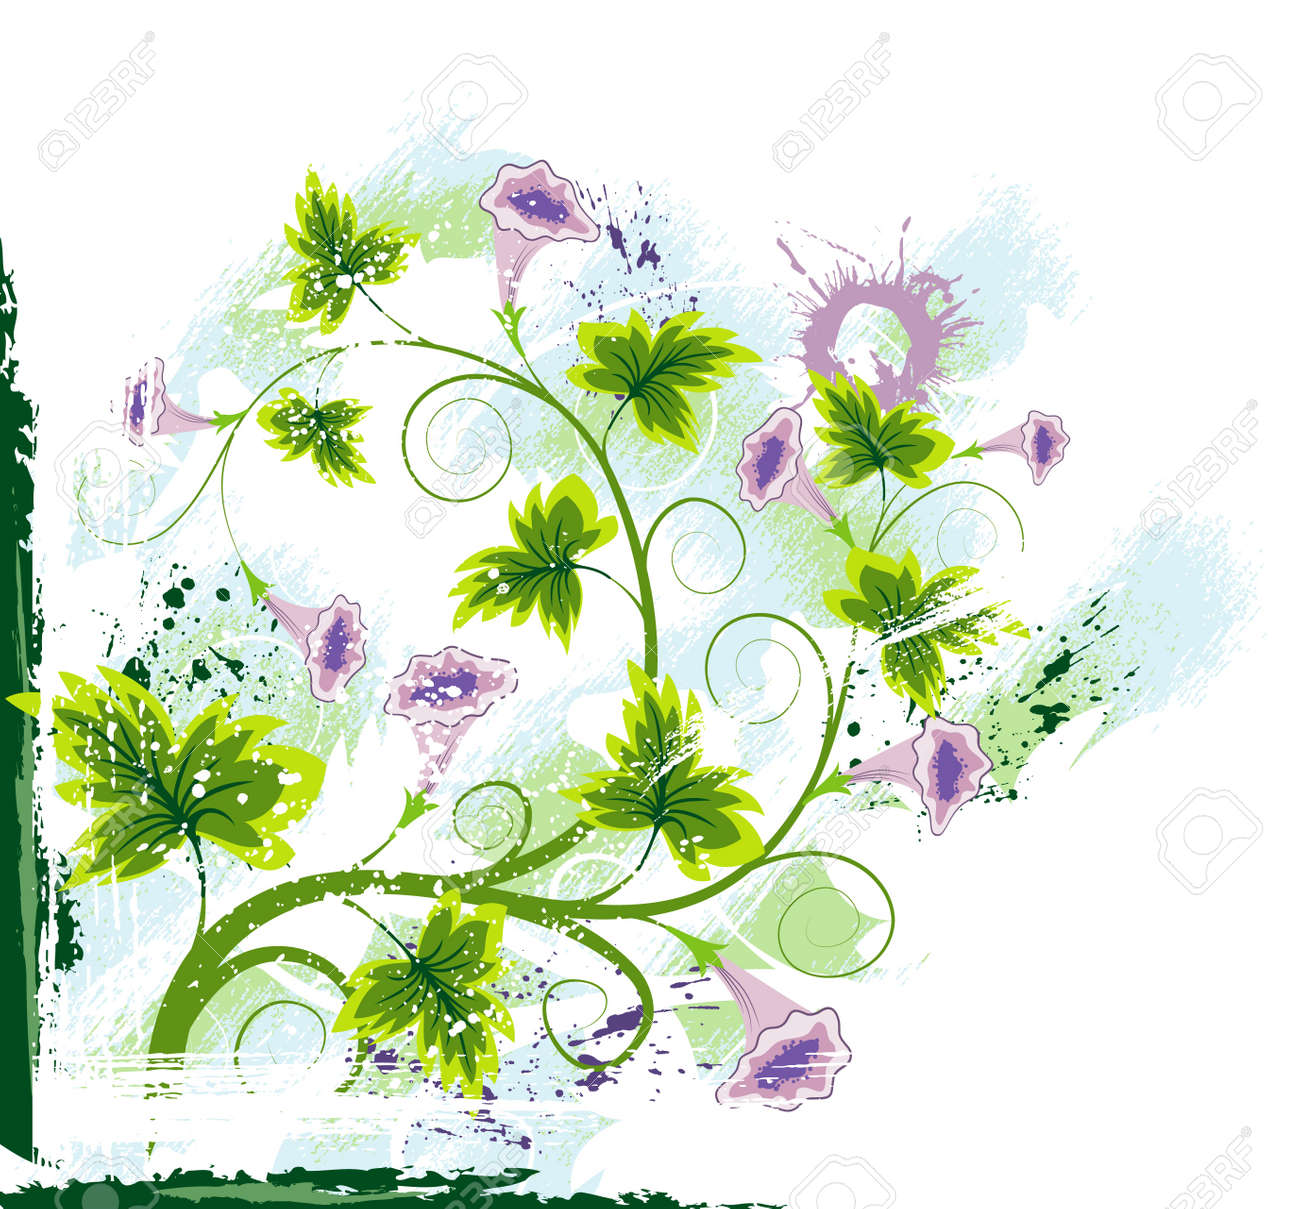 Grunge paint floral chaos, element for design, vector illustration Stock Photo - 873507